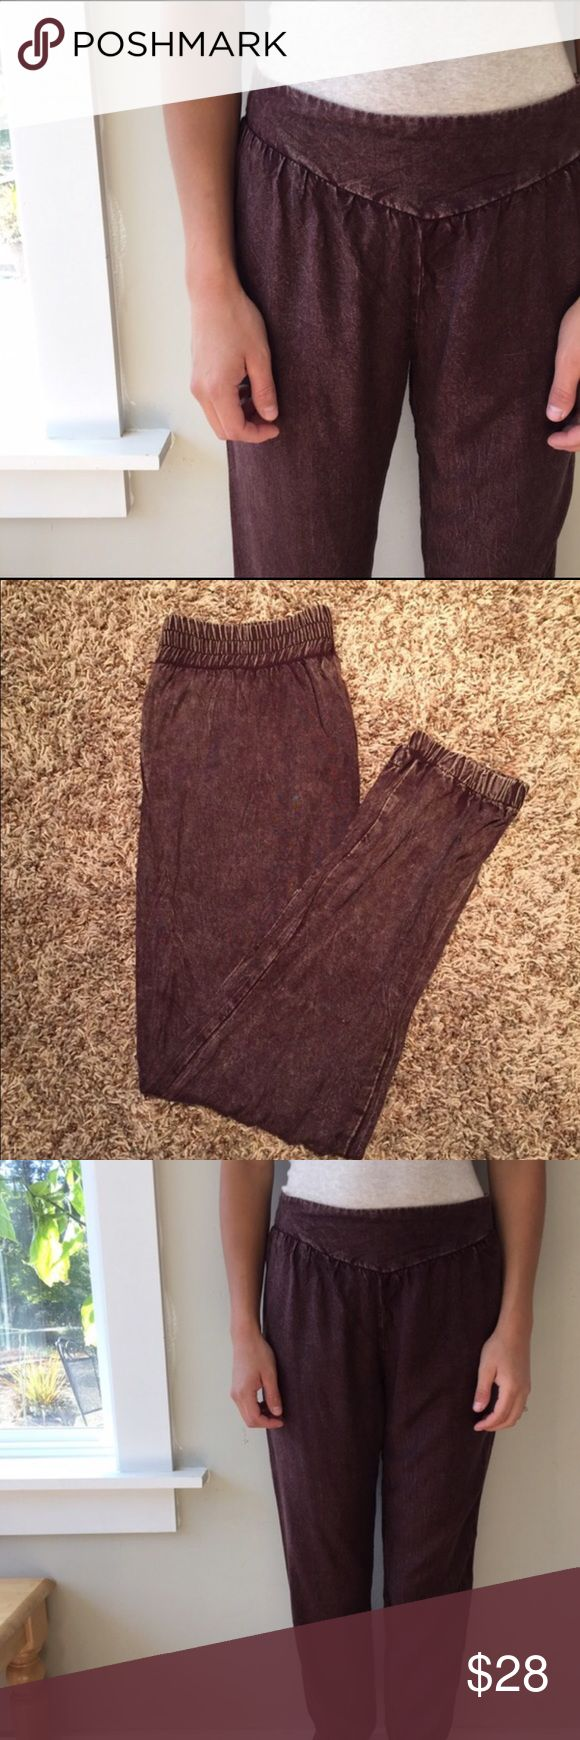 ANTHROPOLOGIE PANTS Oh so comfortable! Soft cotton feel brown joggers with a distressed look. Pull on, gathers at ankle. This pants have never been worn but without tag. Starring at Stars by Anthropologie. Anthropologie Pants